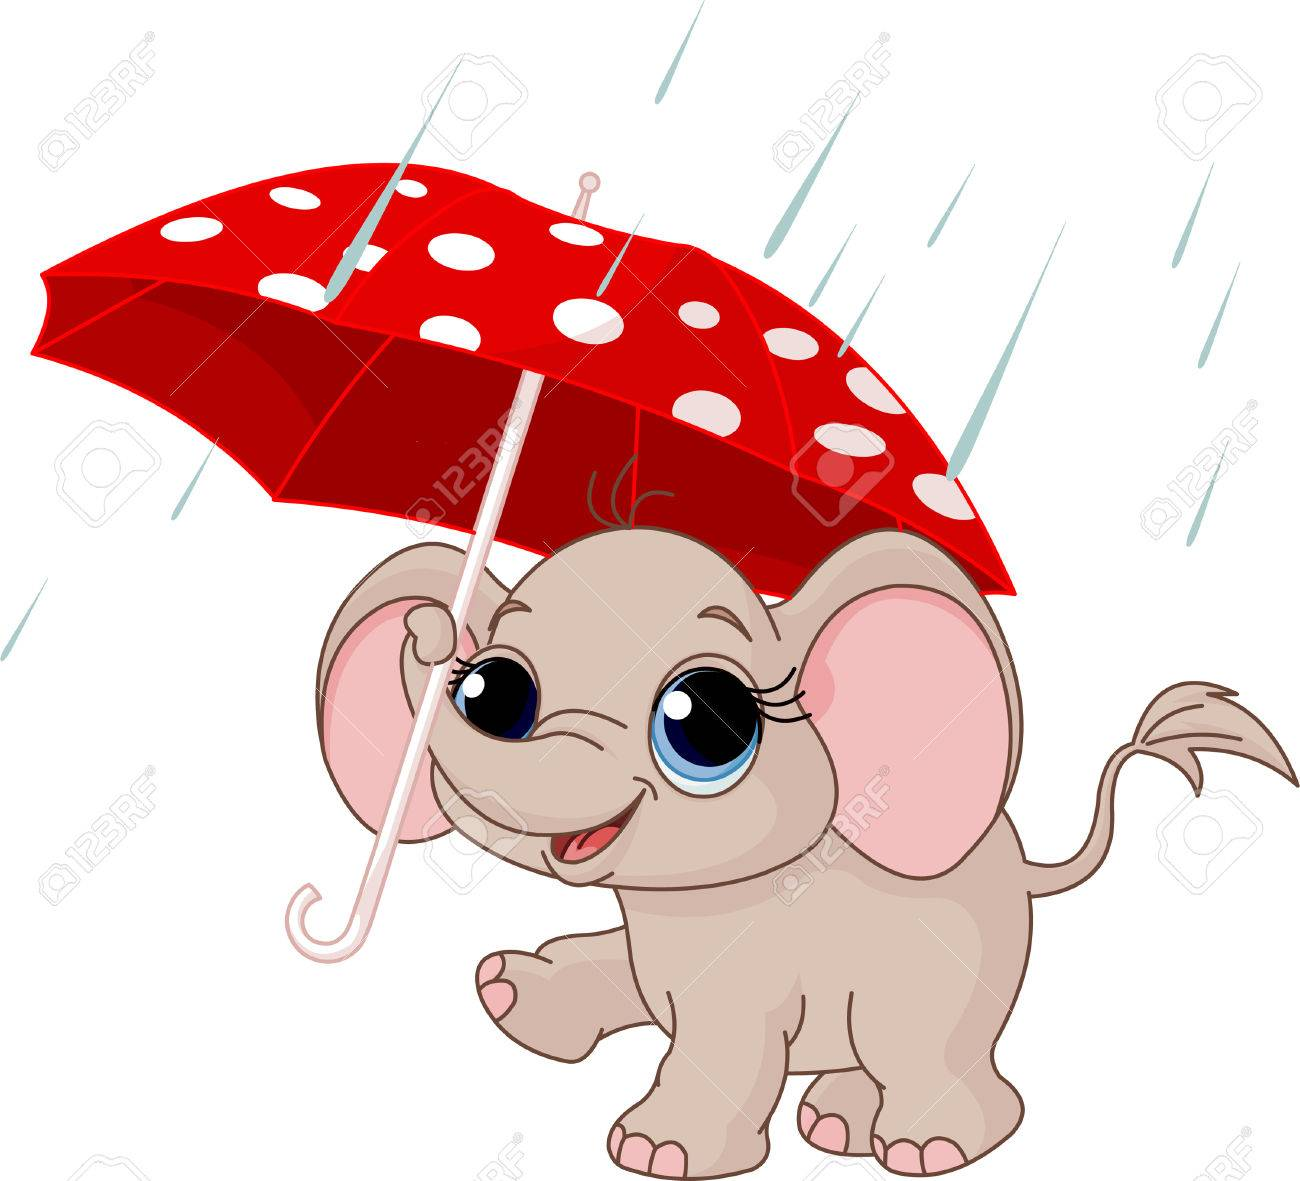 Illustration of Cute and funny baby elephant under umbrella Stock Vector - 8077421